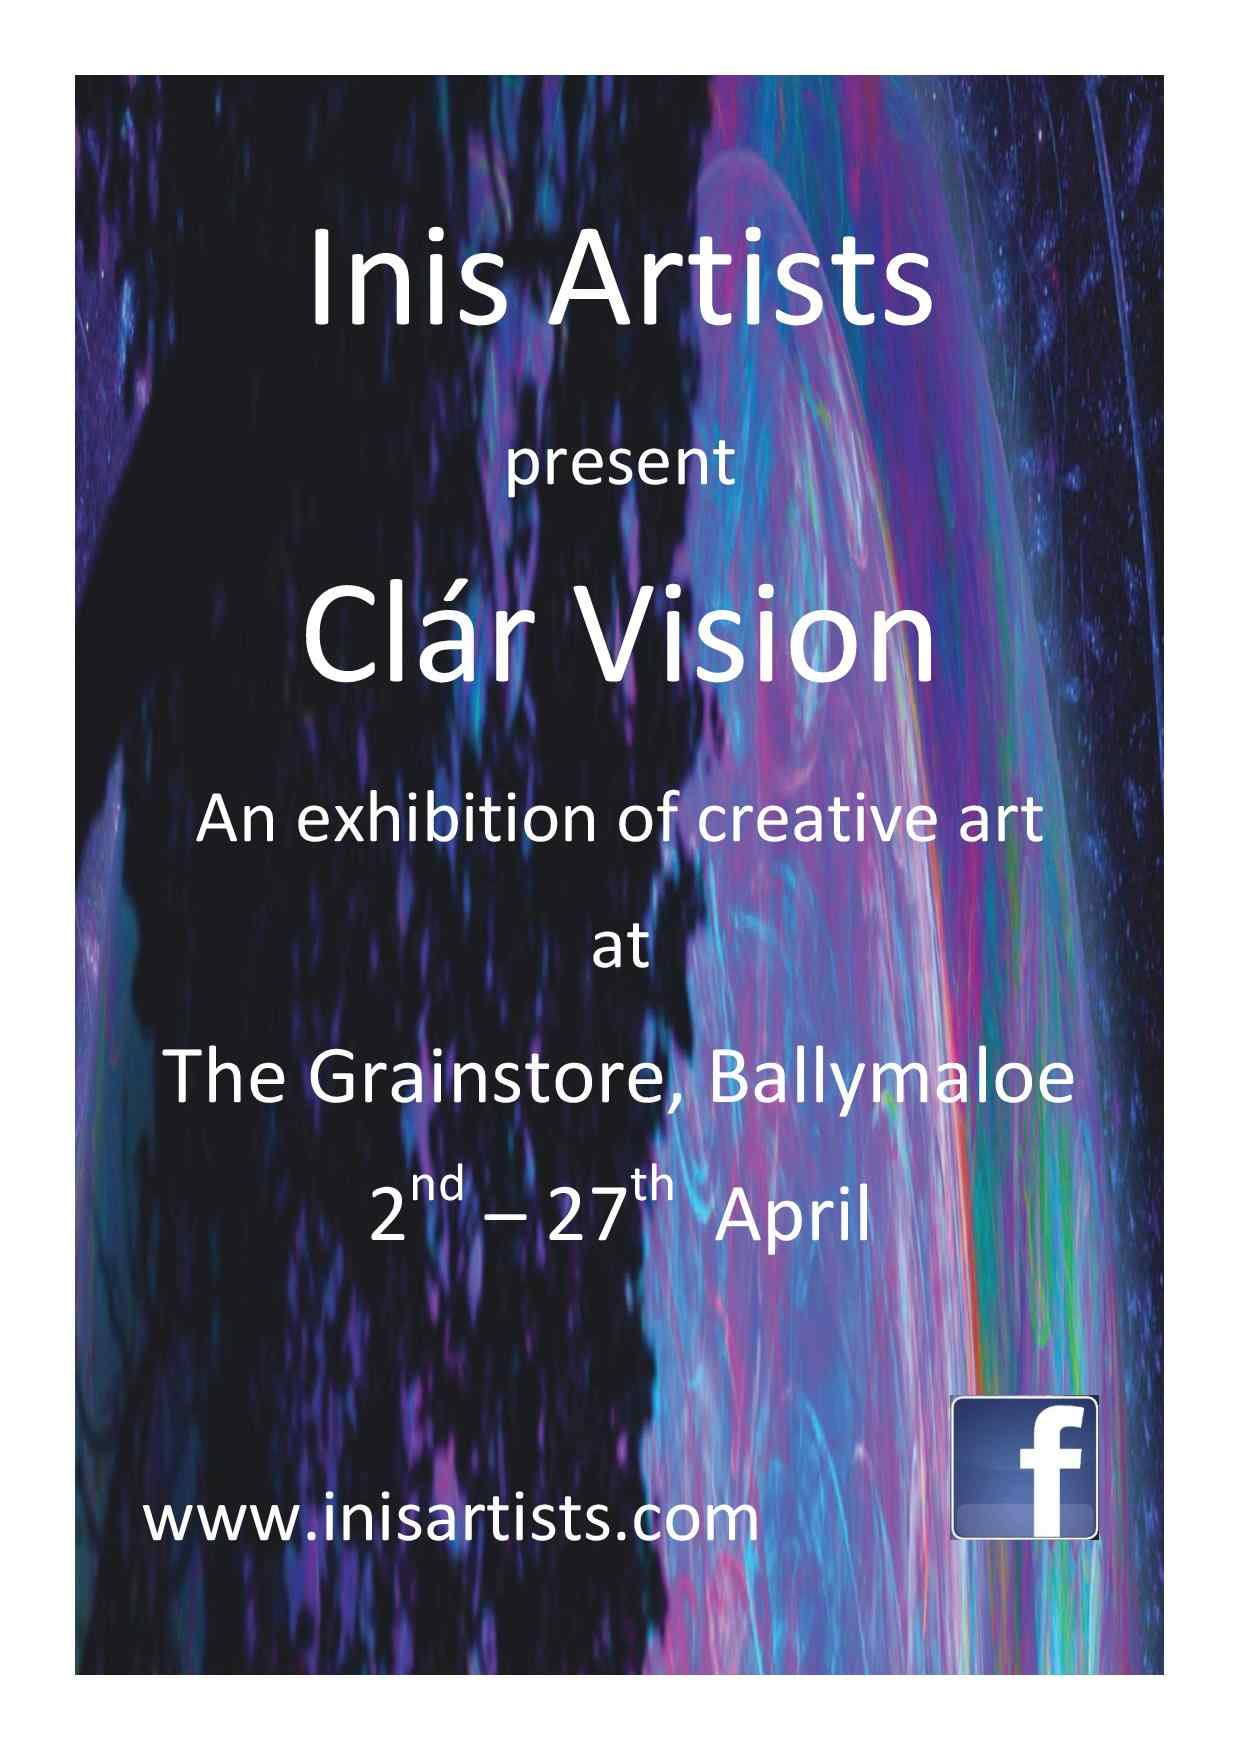 Inis Artists - Creative Art Exhibition at Ballymaloe Grainstore